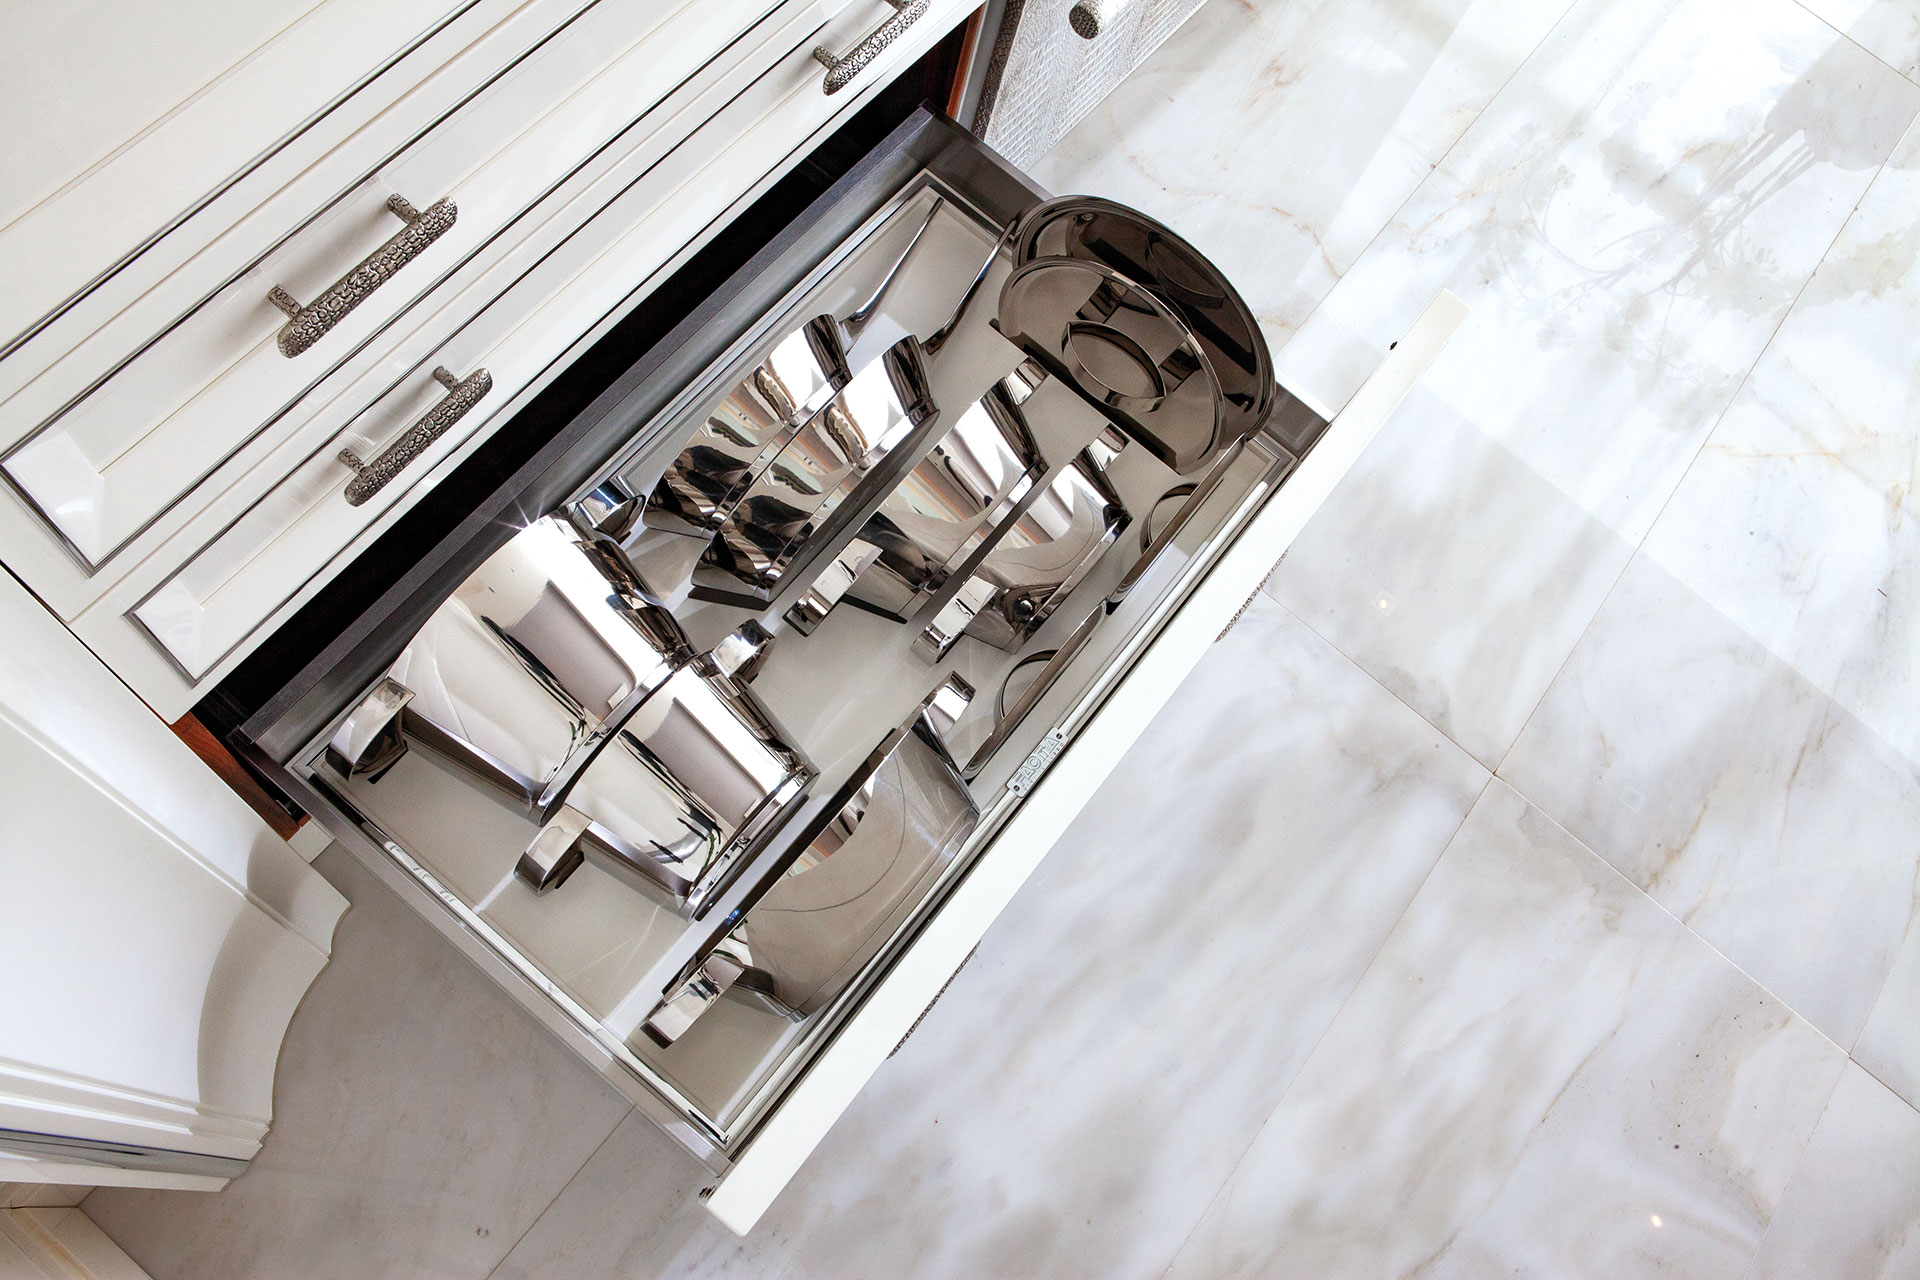 Faoma Dehon customised kitchen drawers